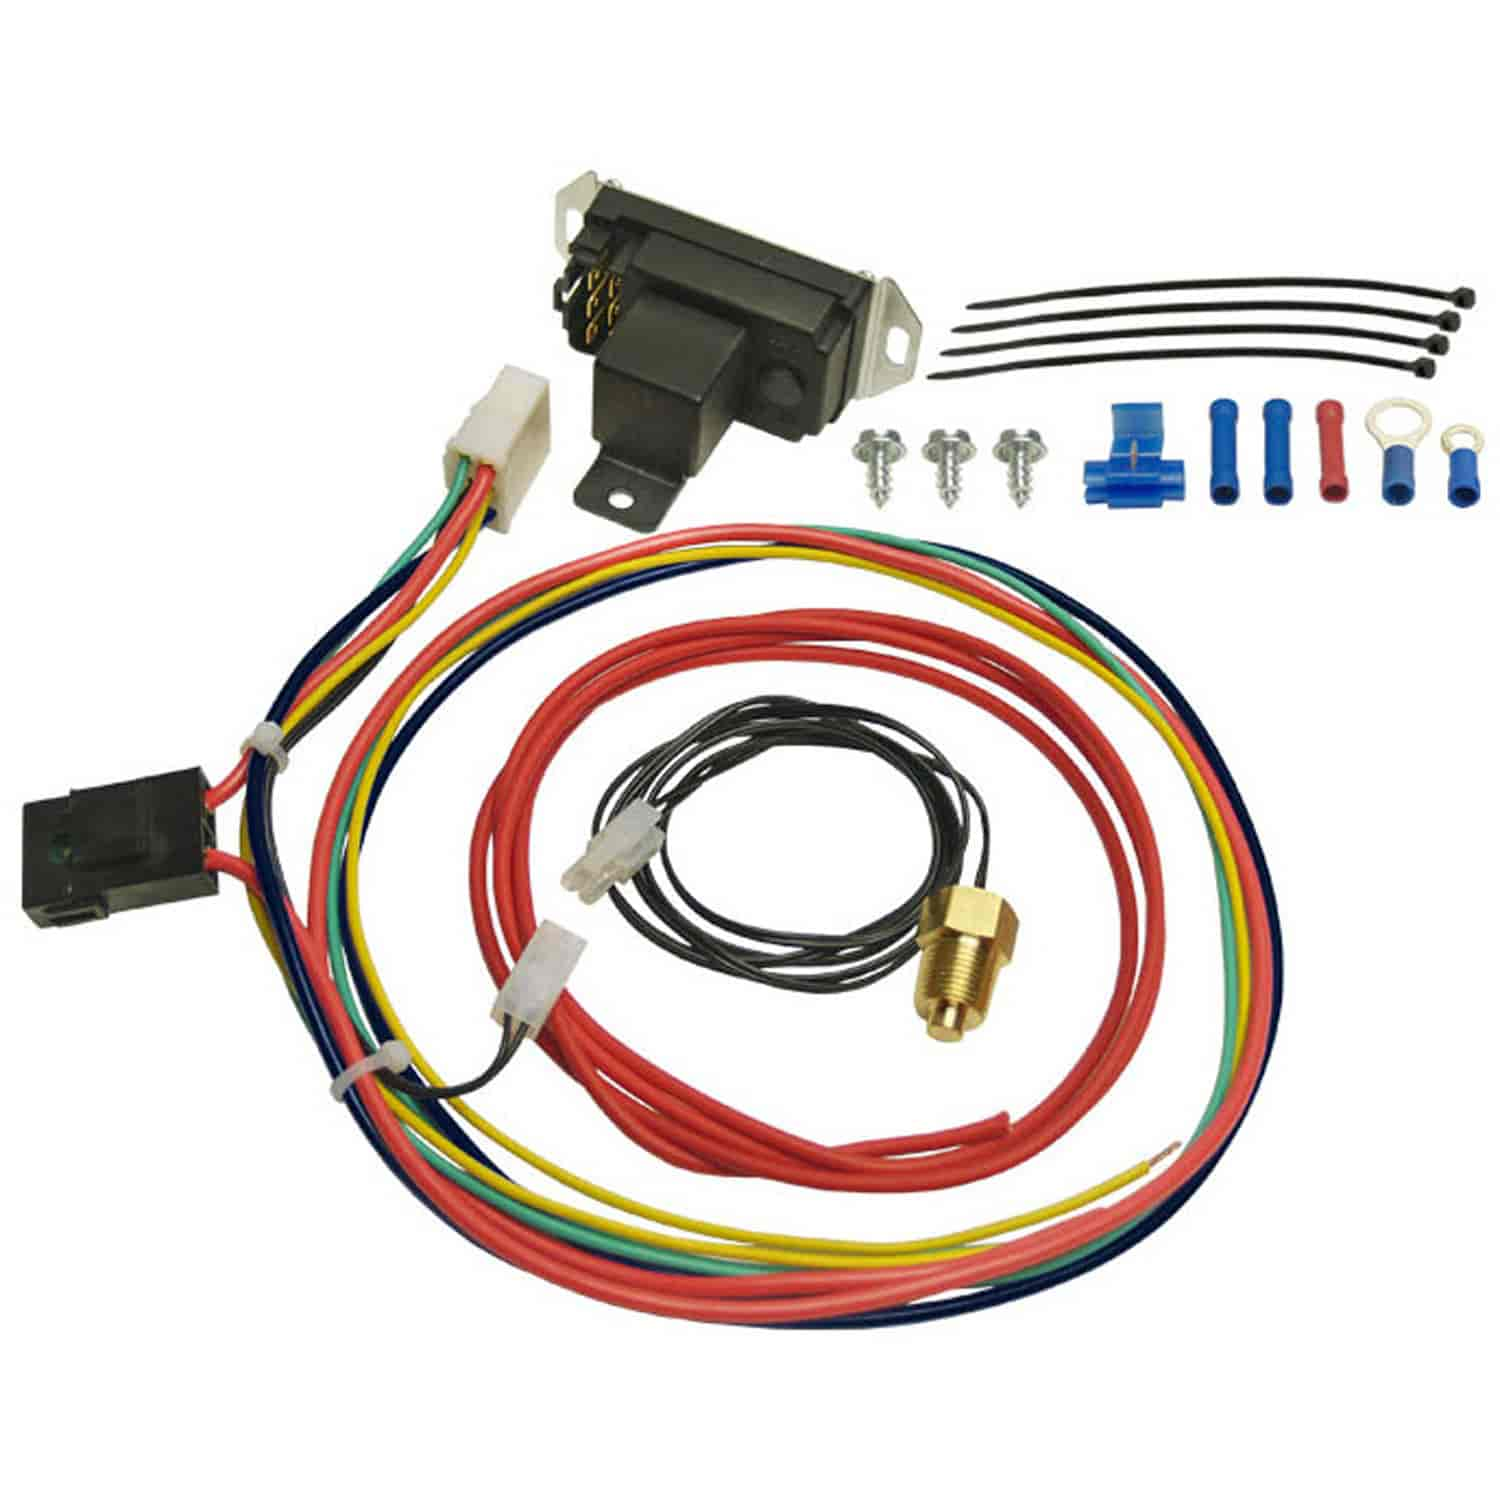 259 16749_1 jegs hot rod wiring harness wiring diagrams VW Wiring Harness Kits at sewacar.co